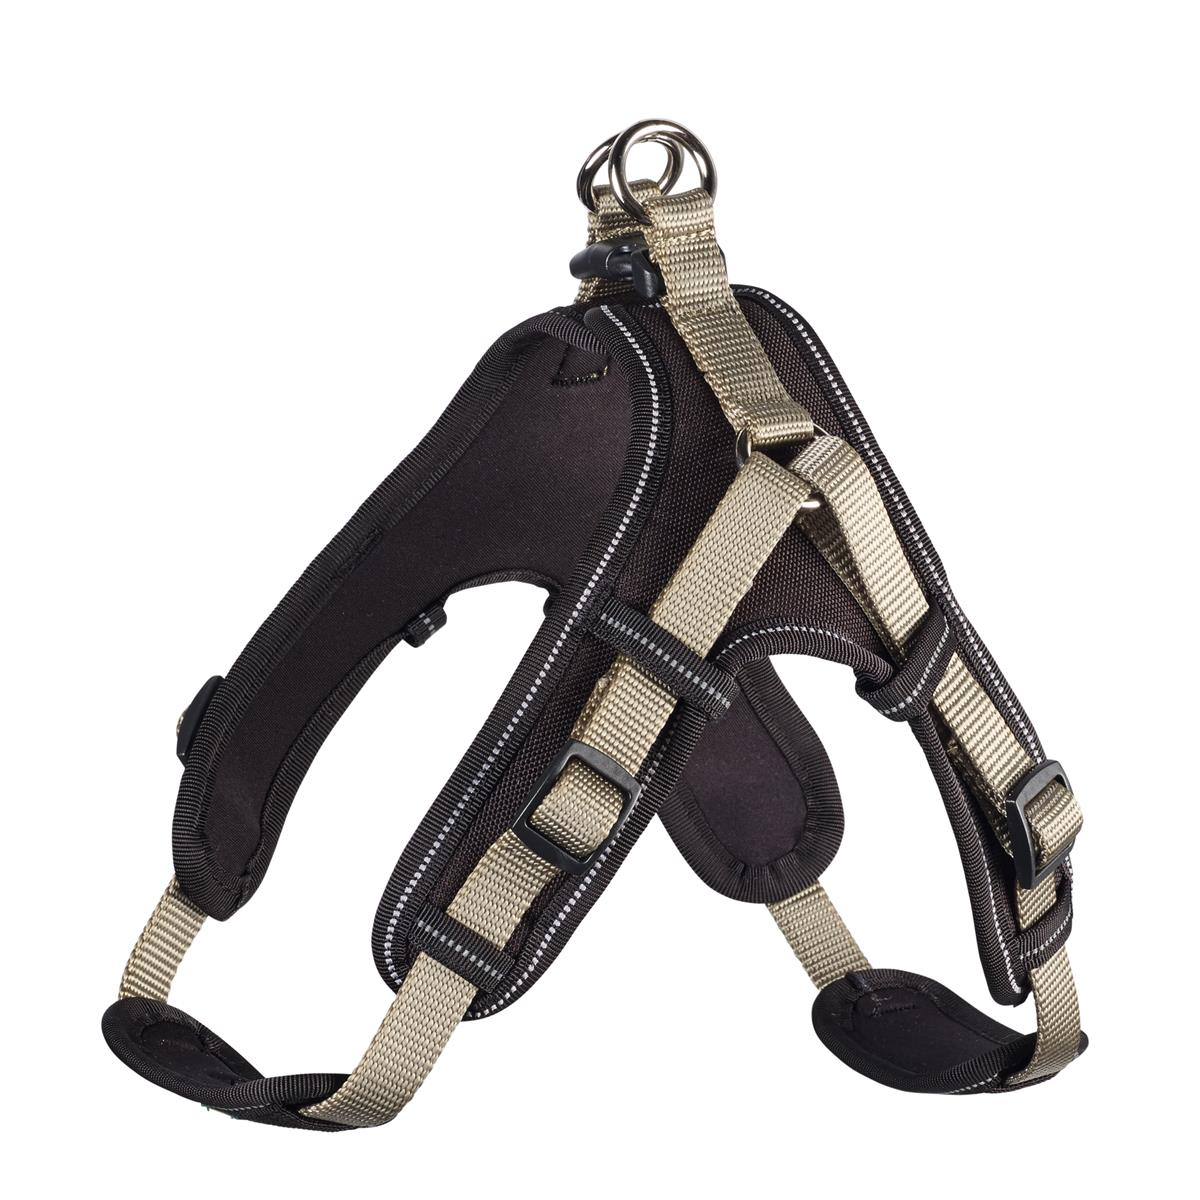 Harness Neoprene Vario Quick M 55-70 cm, 15 mm